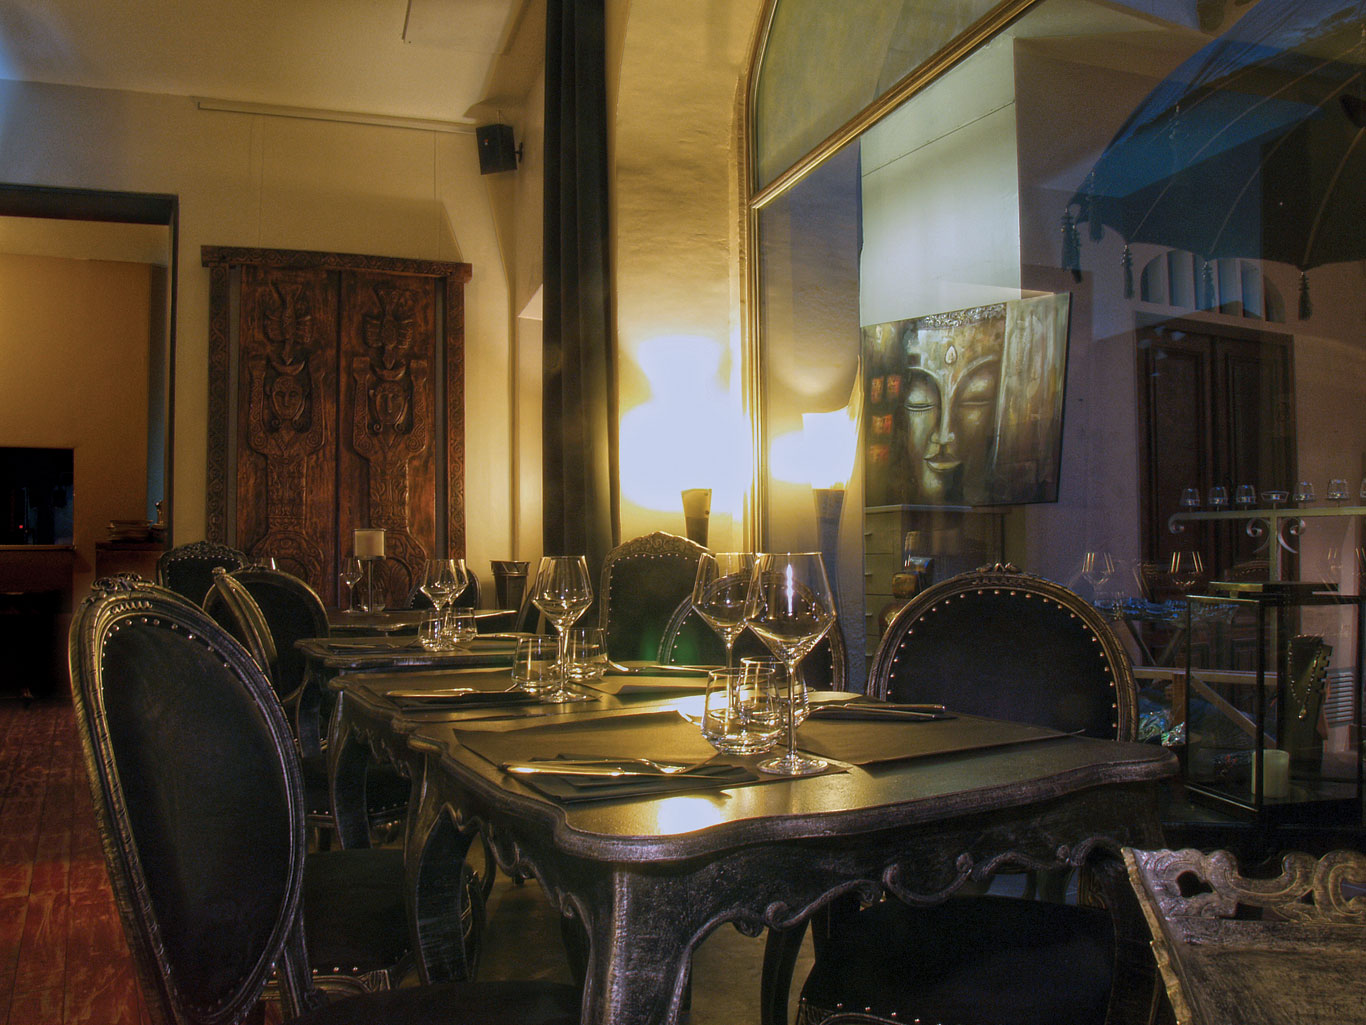 14-le-boudoir-restaurant-table-desserte-Perpignan